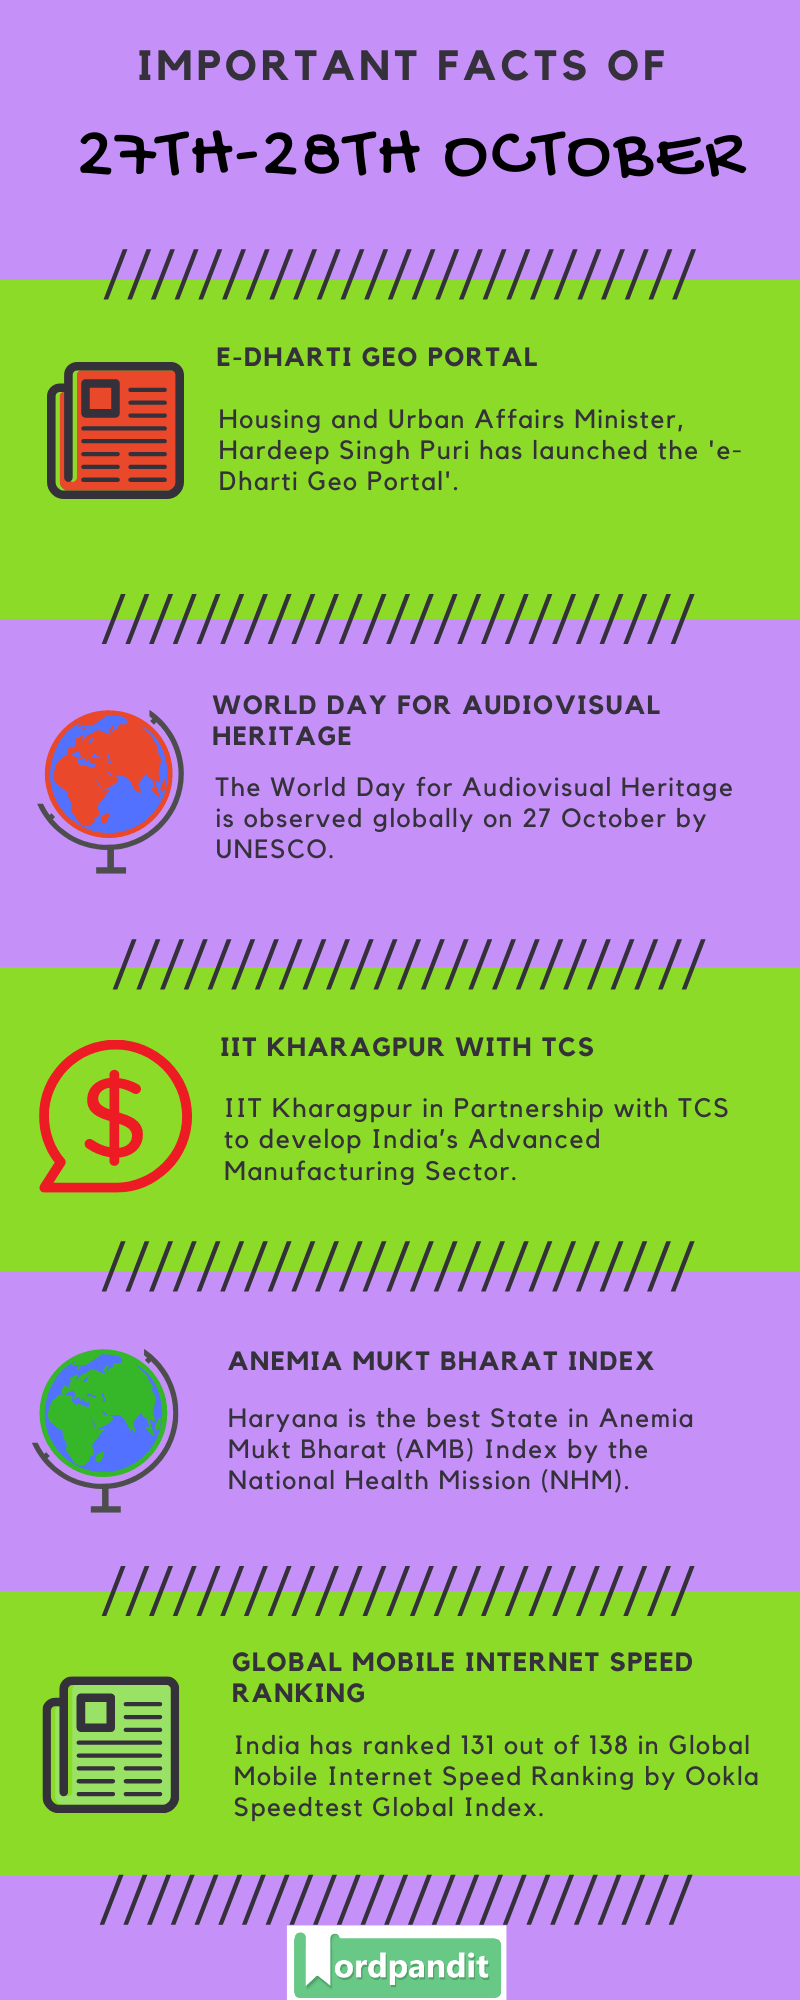 Daily Current Affairs 27th-28th October 2020 Current Affairs Quiz 27th-28th October 2020 Current Affairs Infographic